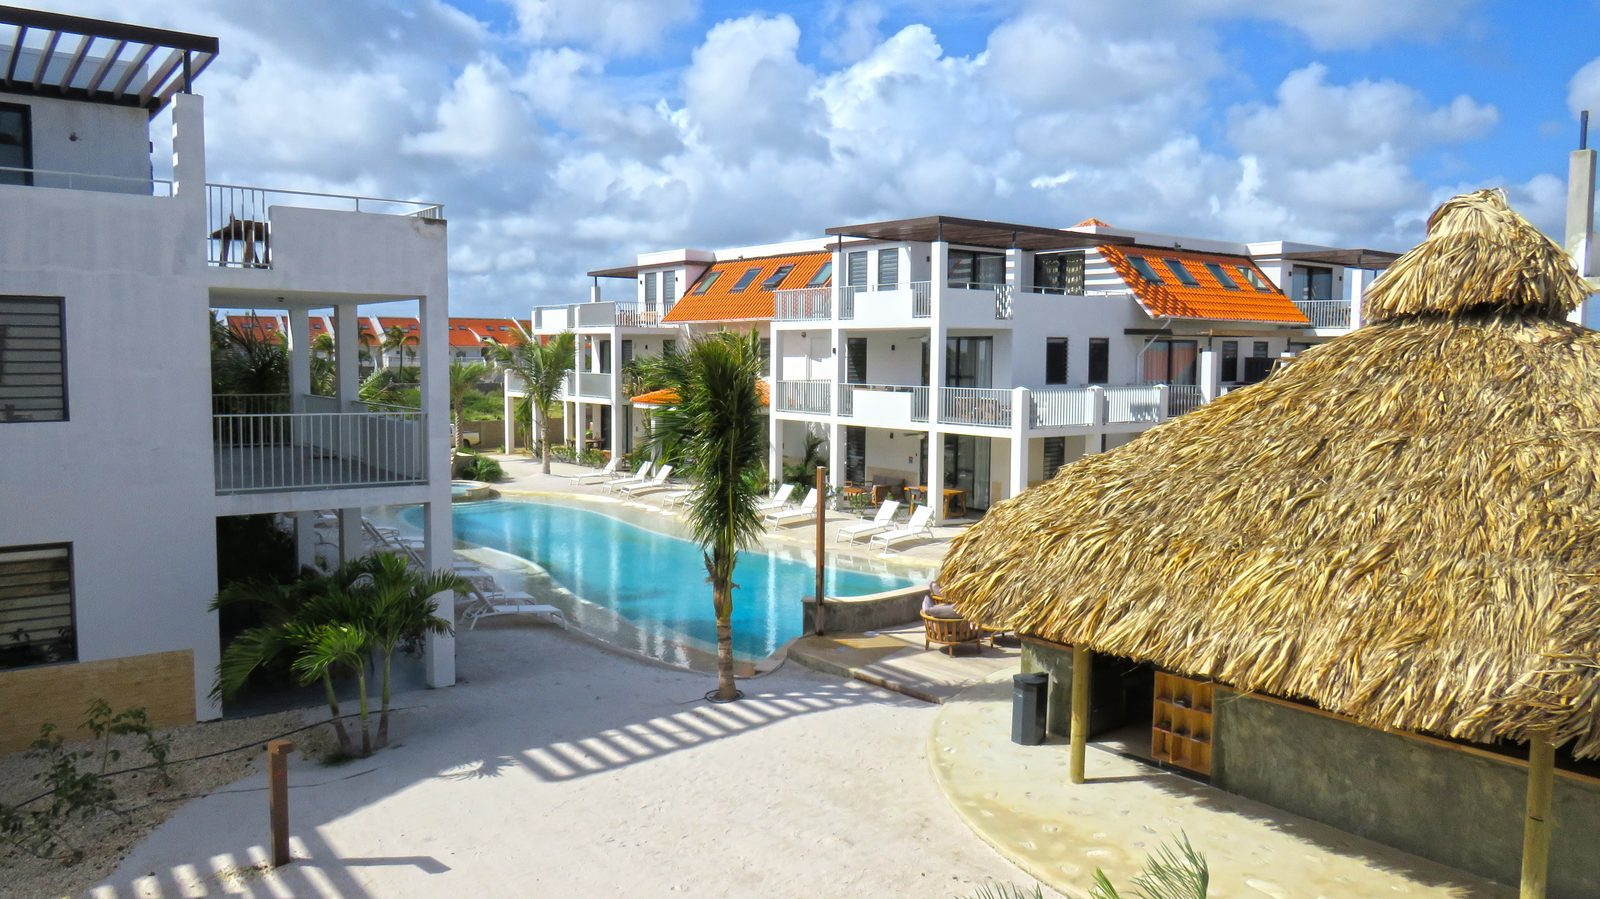 Resort Bonaire apartment rentals are made to enjoy a vacation! The new Bonaire apartments are perfect if you want to stay in a new apartment.